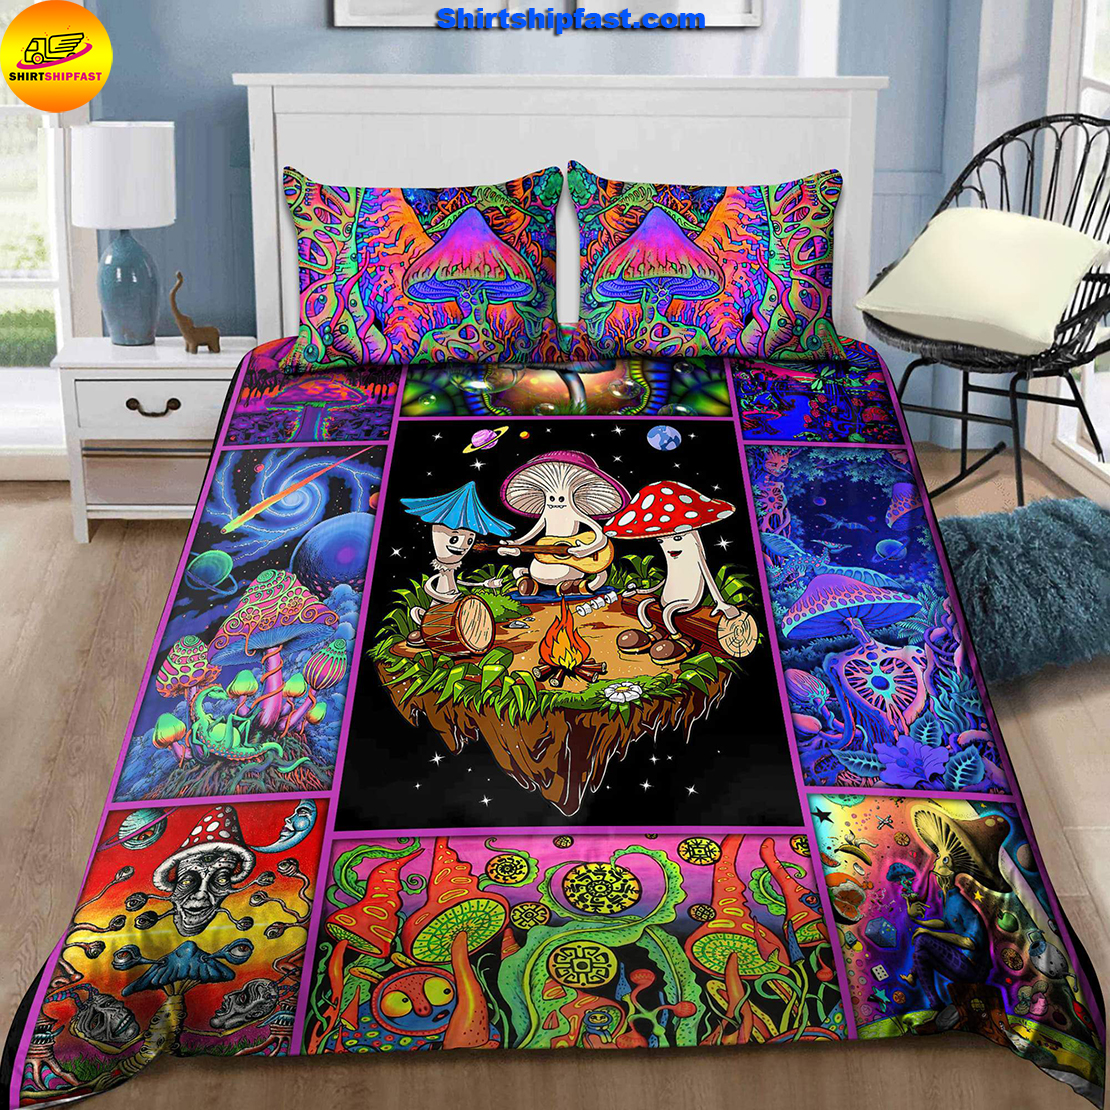 Colorful mushroom hippie bedding set - Picture 2